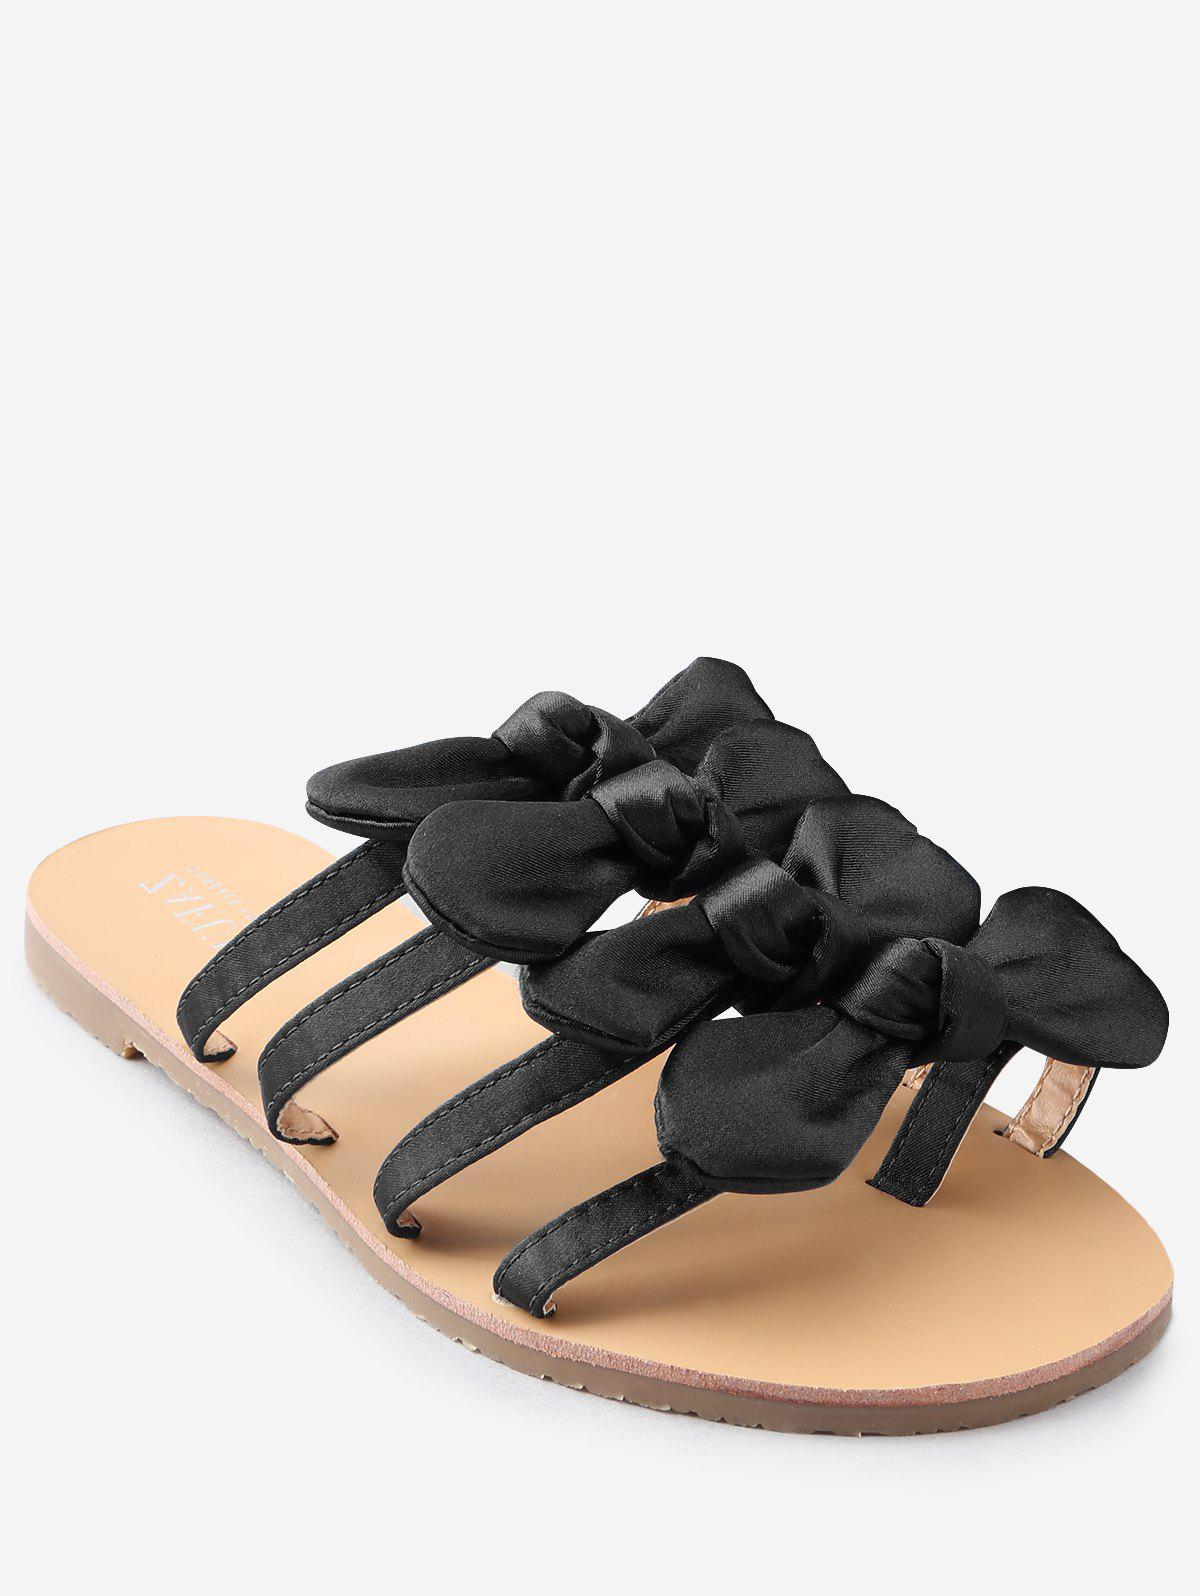 Flat Heel Bowknot Casual Thong Sandals - BLACK 35